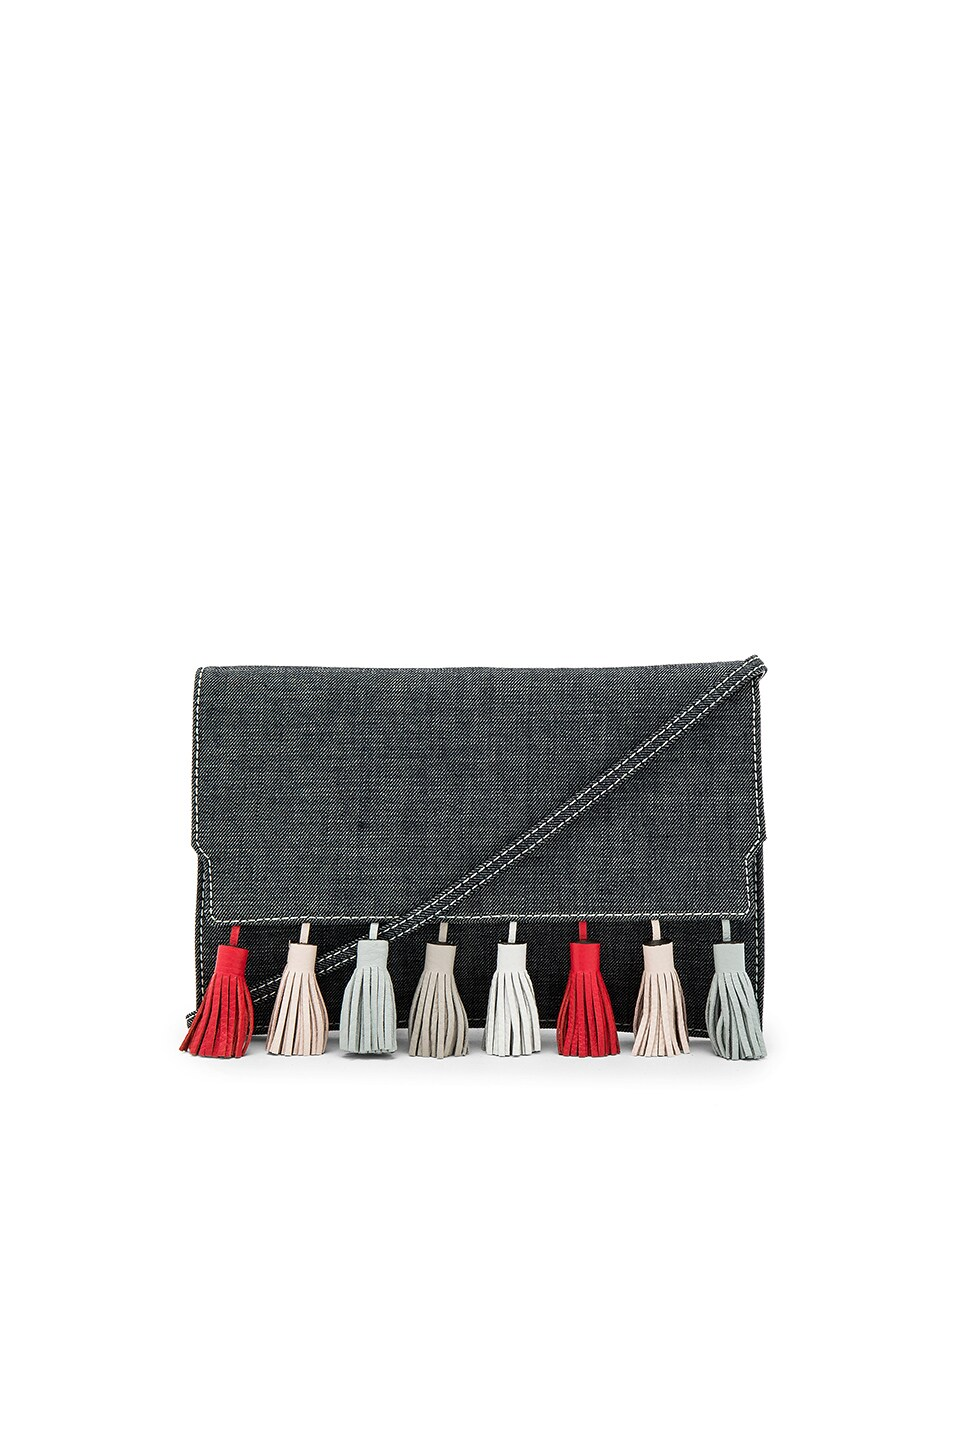 Rebecca Minkoff Sofia Clutch in Dark Denim Multi